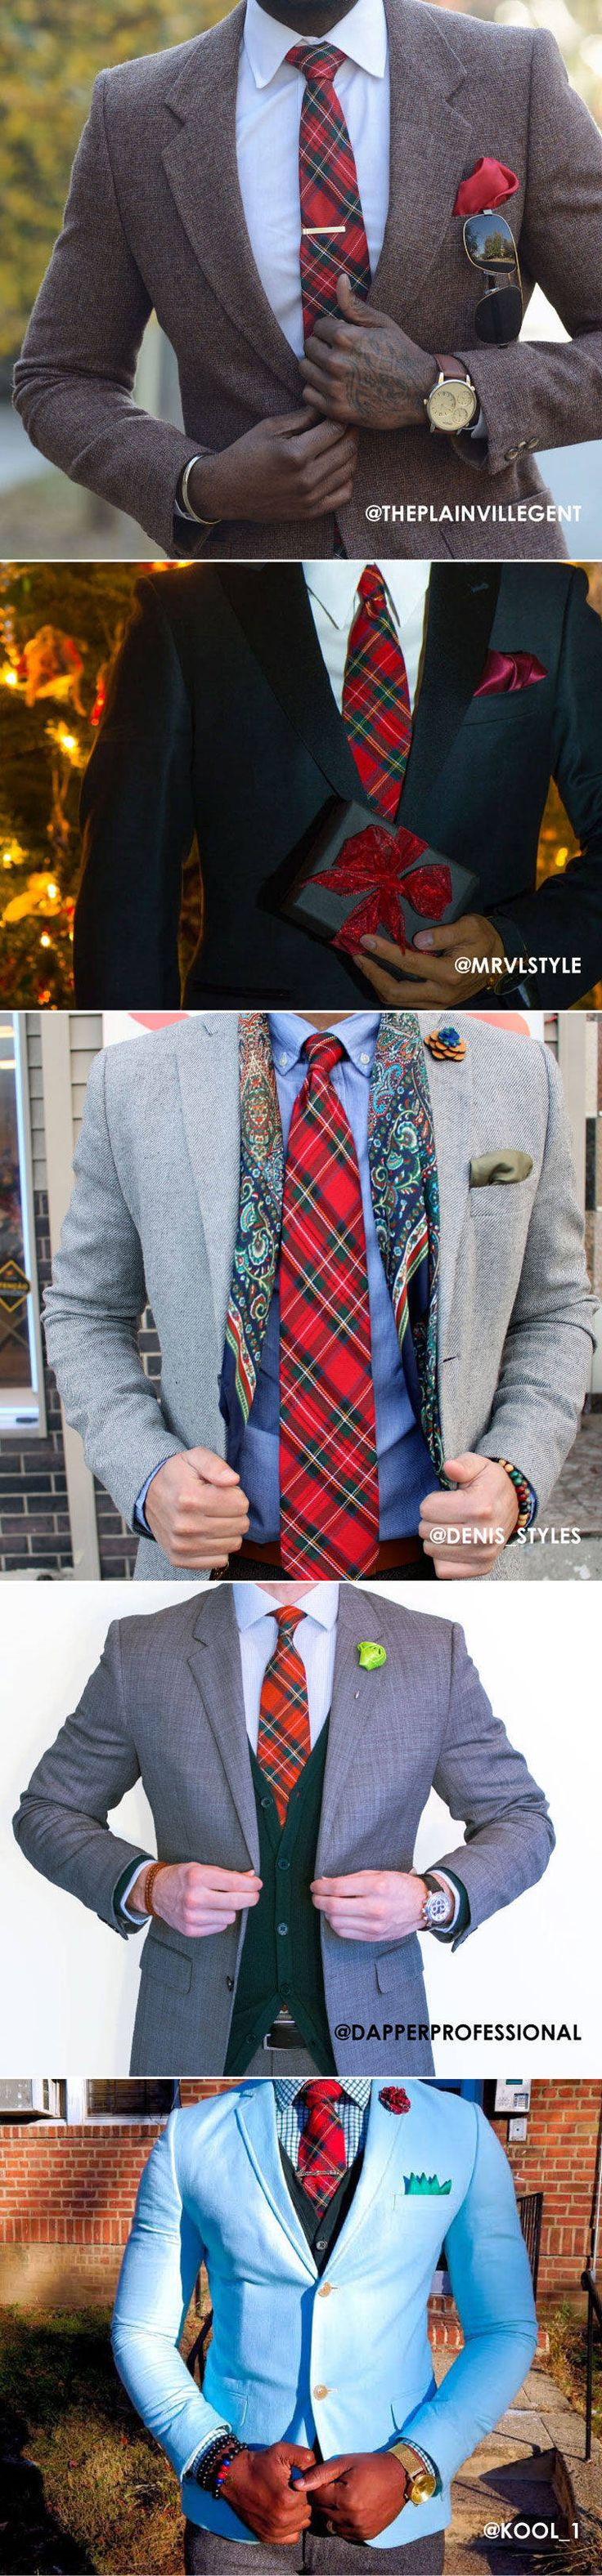 Who Wore It Best - Five Looks With The Same Tartan Plaid Tie.